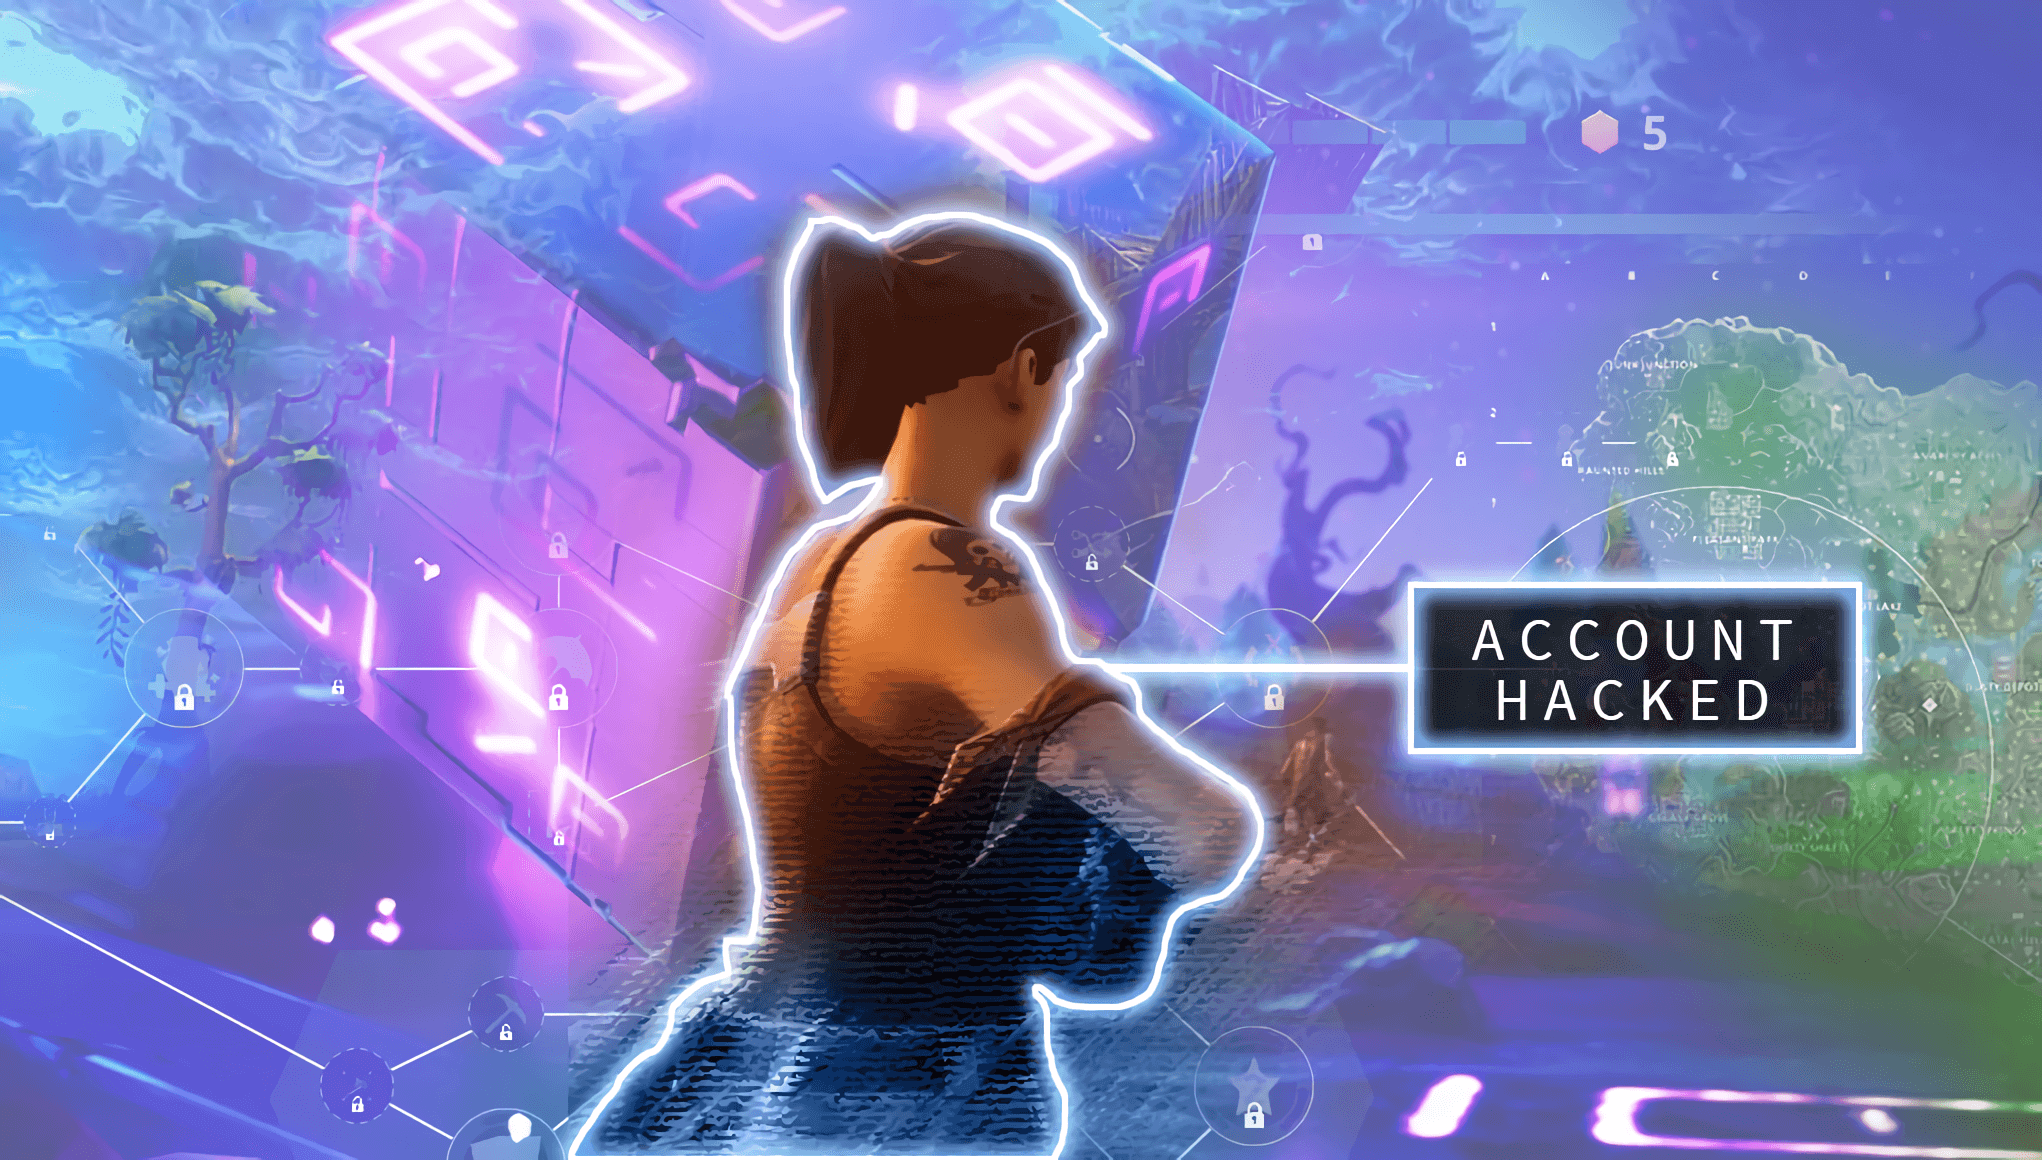 Epic Games weaknesses let Check Point hack Fortnite accounts